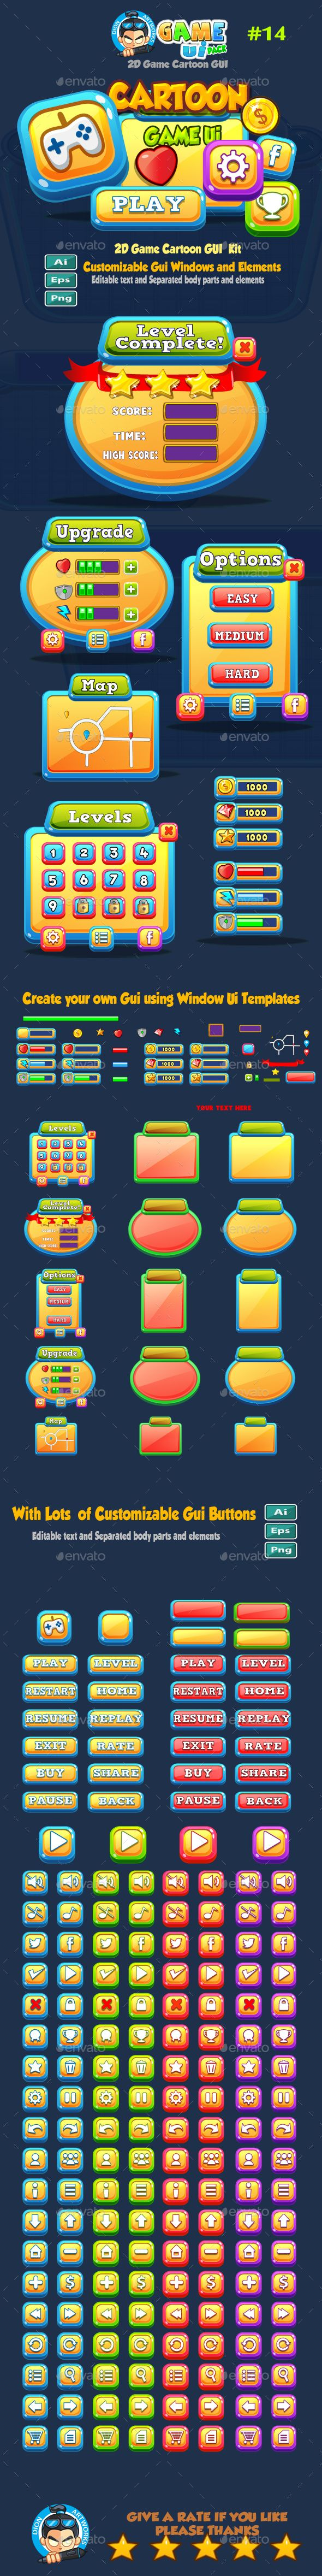 Cartoon Game UI Pack Design Template 14 - User Interfaces Game Assets Design Template Vector EPS, AI Illustrator. Download here: https://graphicriver.net/item/cartoon-game-ui-pack-14/18830140?ref=yinkira